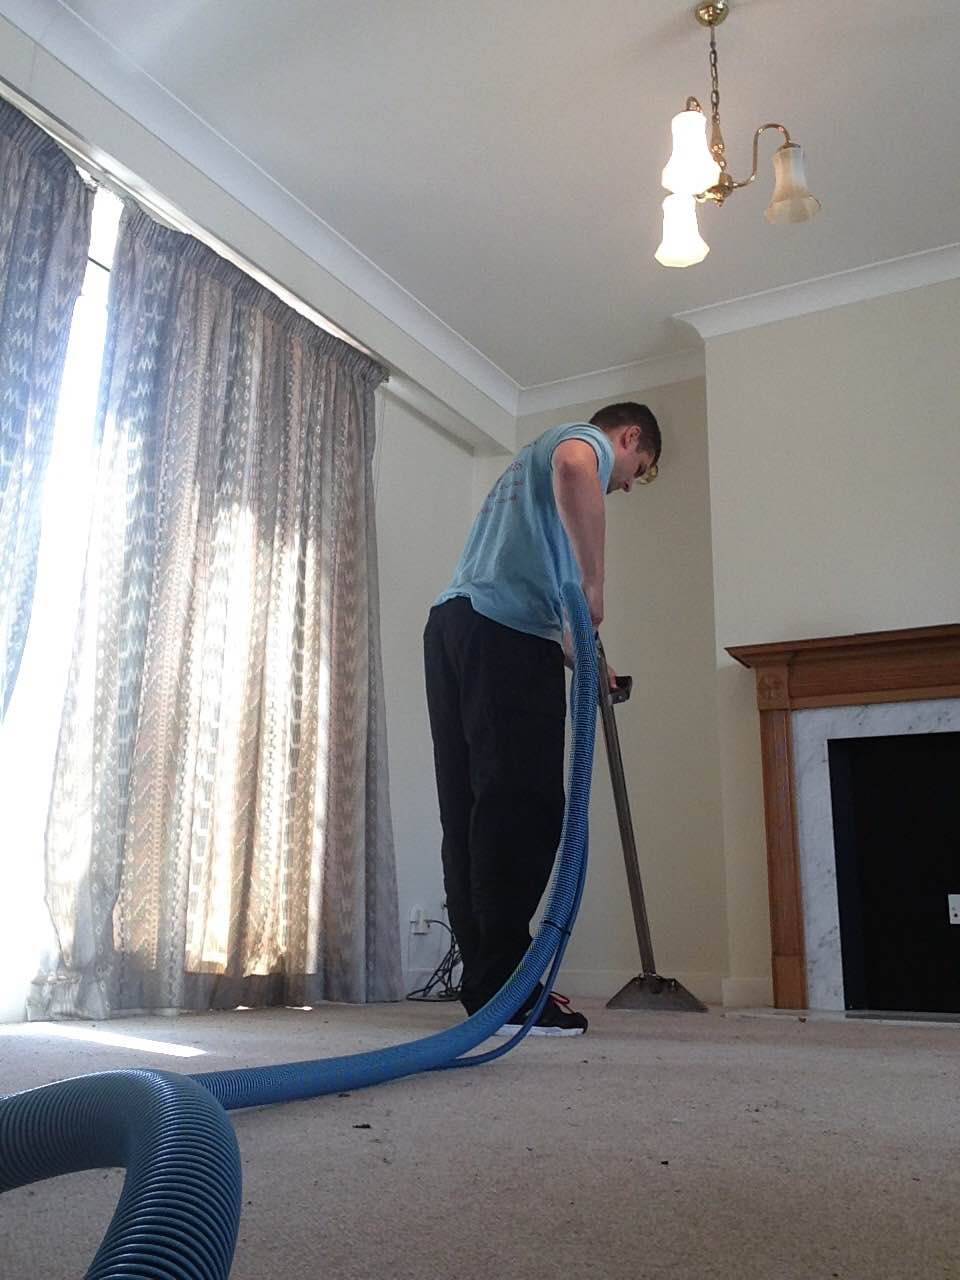 carpet cleaners Ealing.jpg